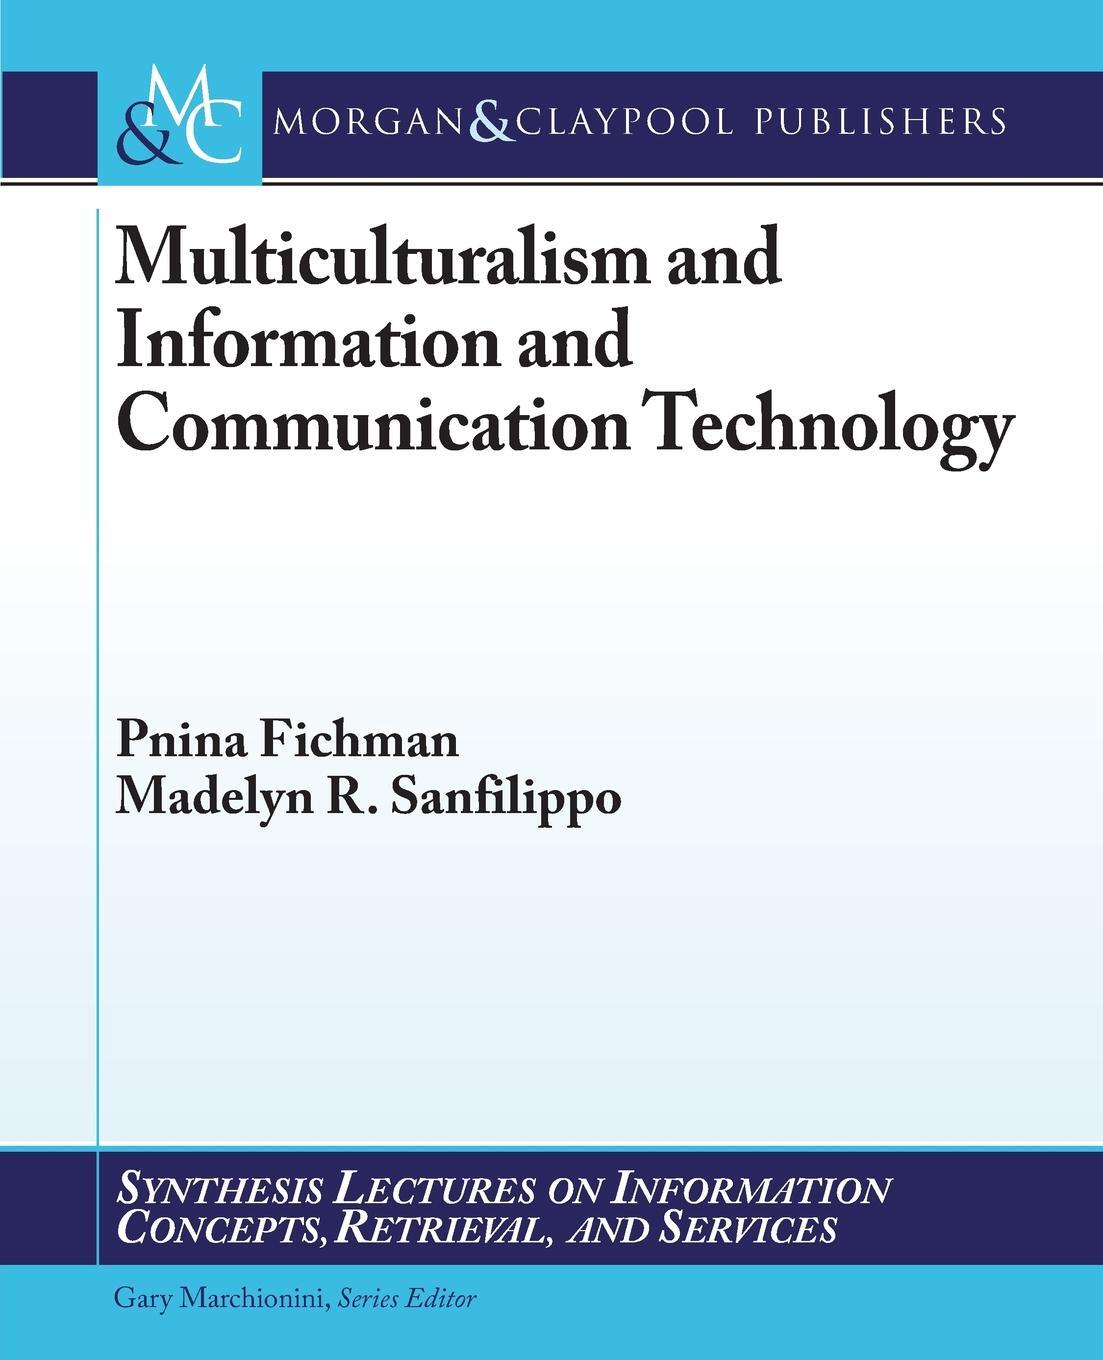 Multiculturalism and Information and Communication Technology. Pnina Fichman, Madelyn R. Sanfilippo